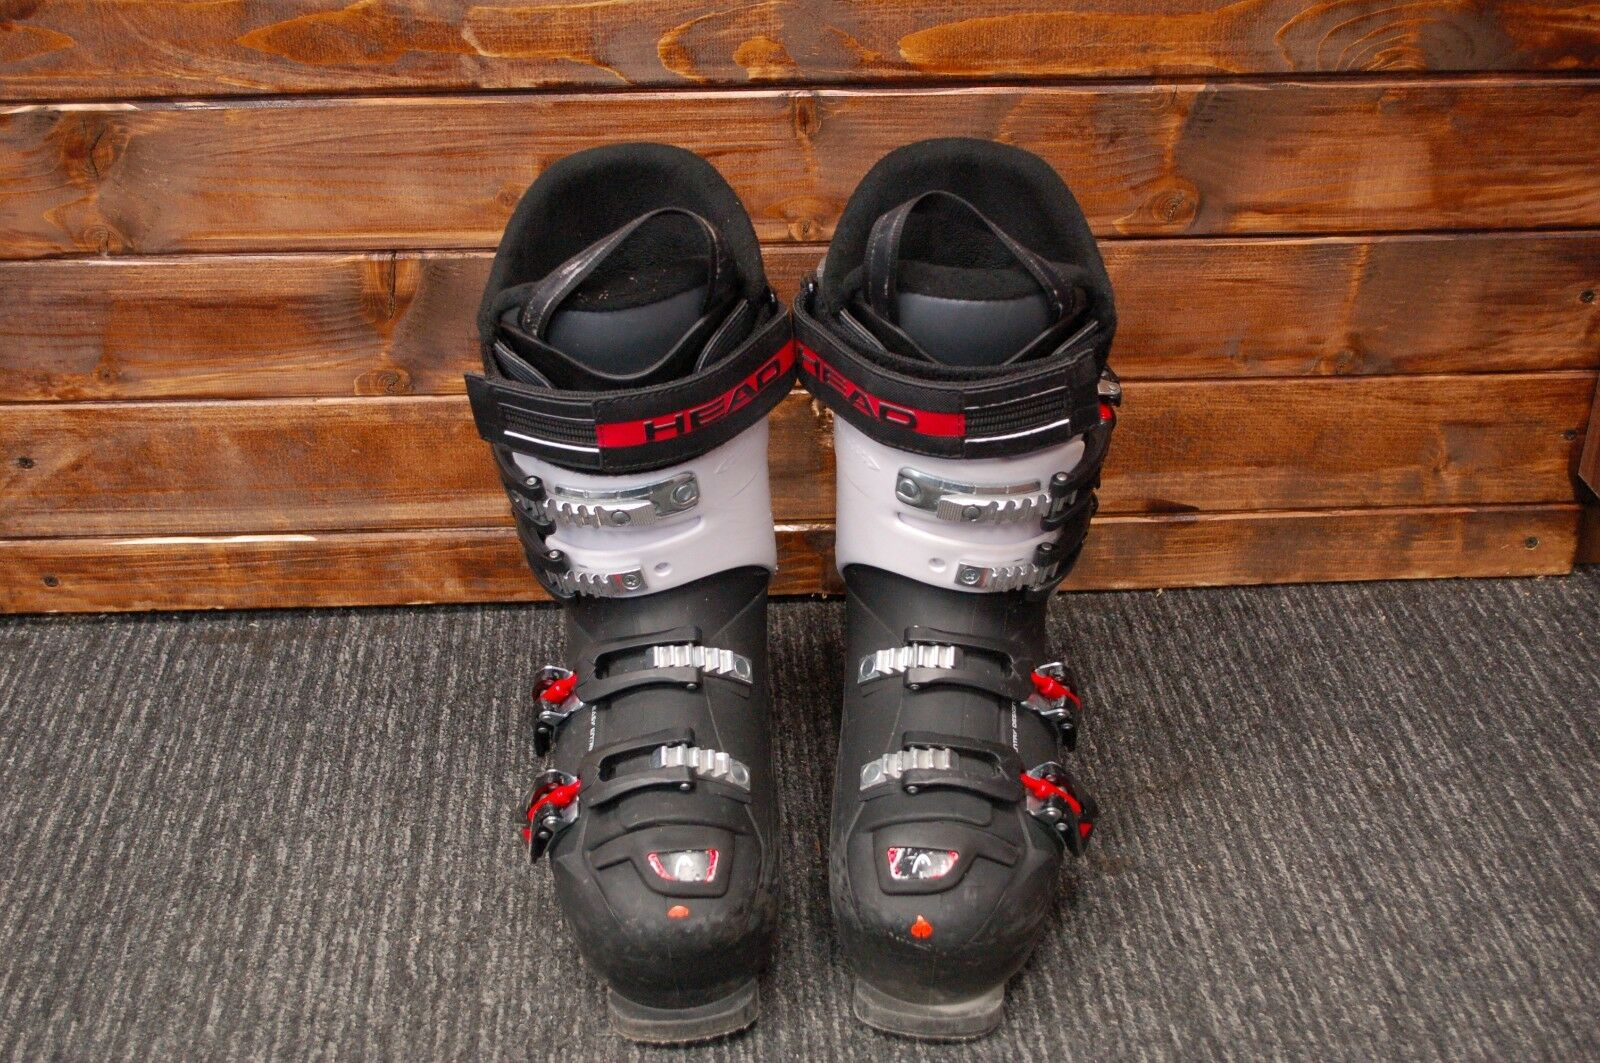 HEAD Next Edge B.Y.S. 80  Ski Boots (US 7; ; )  happy shopping